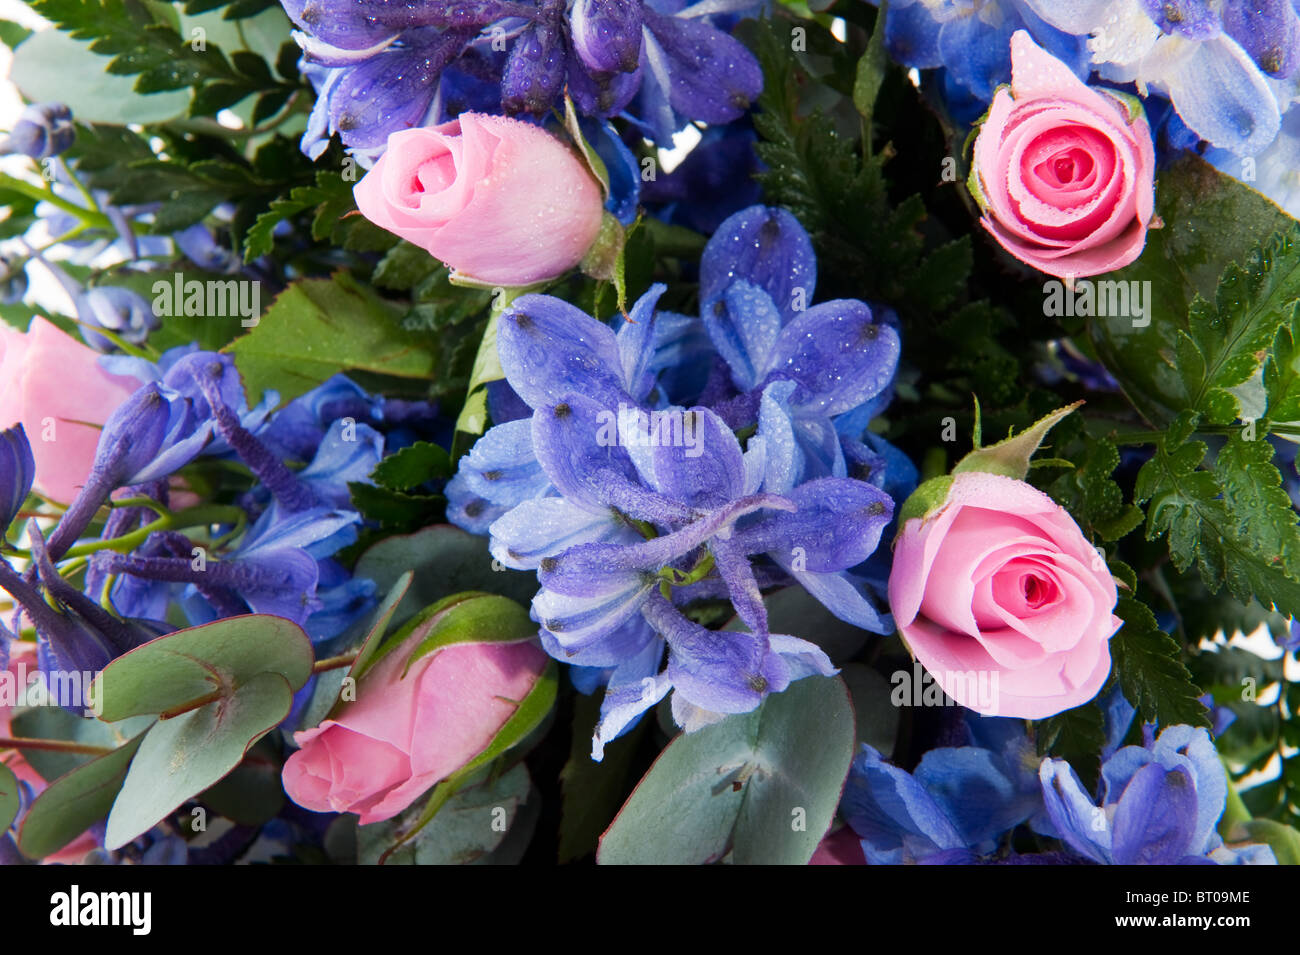 Mazzo Di Fiori Blu.Blue Larkspur And Pink Roses In Mixed Flower Bouquet Stock Photo